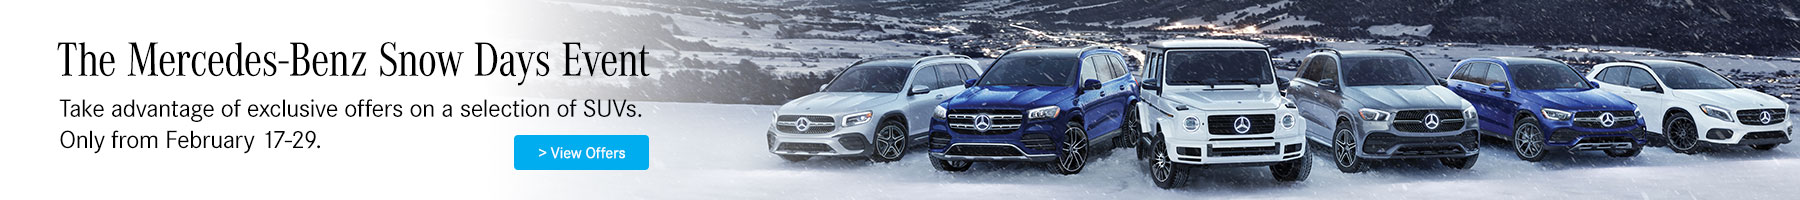 Mercedes-Benz Snow Days Event